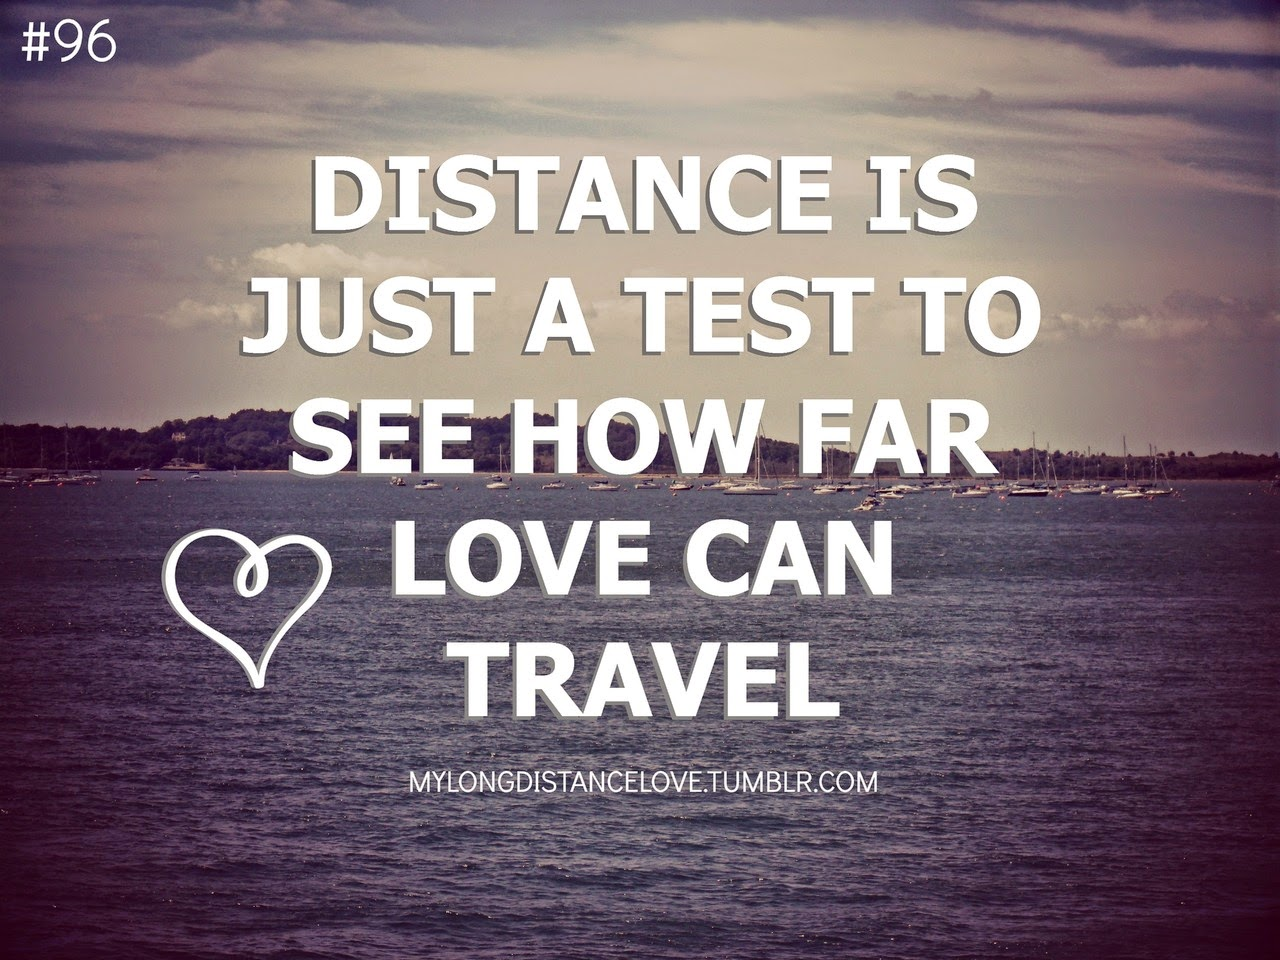 Long Distance Love Quotes : Long Distance Love Quotes For Him From Her. QuotesGram